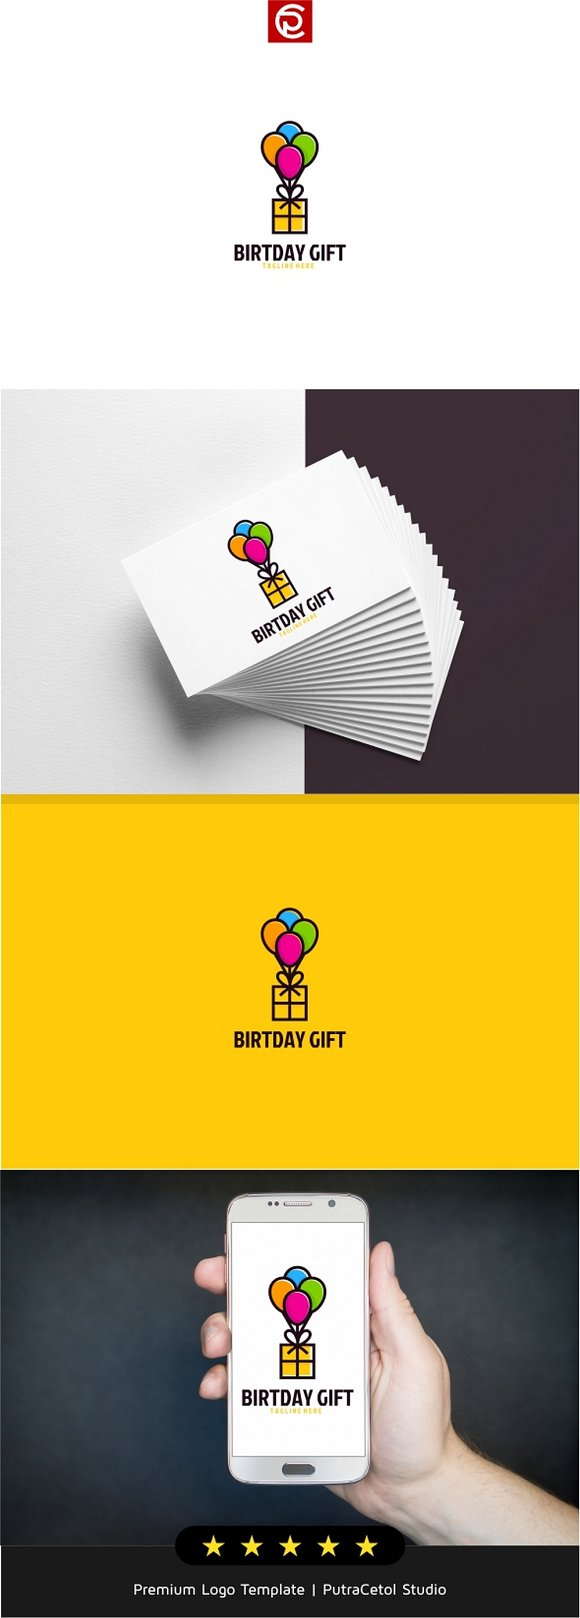 Birthday Gift Logo